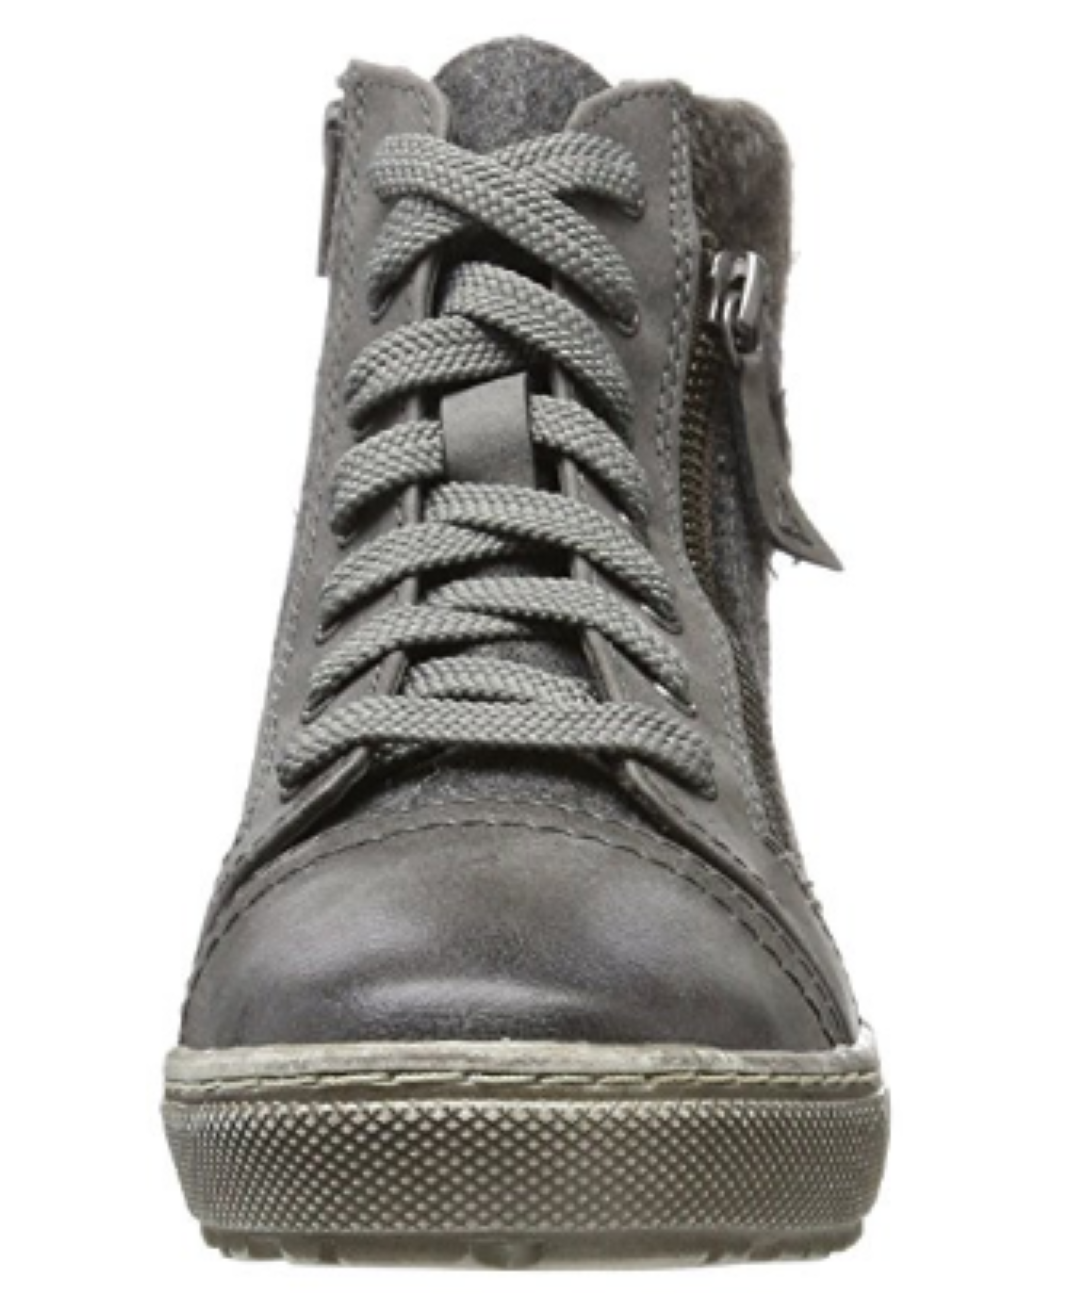 Jana Women's 26205 Hi-Top Trainers Grey Size UK UK UK 5 EU 38 NH07 08 SALEx 813a8e